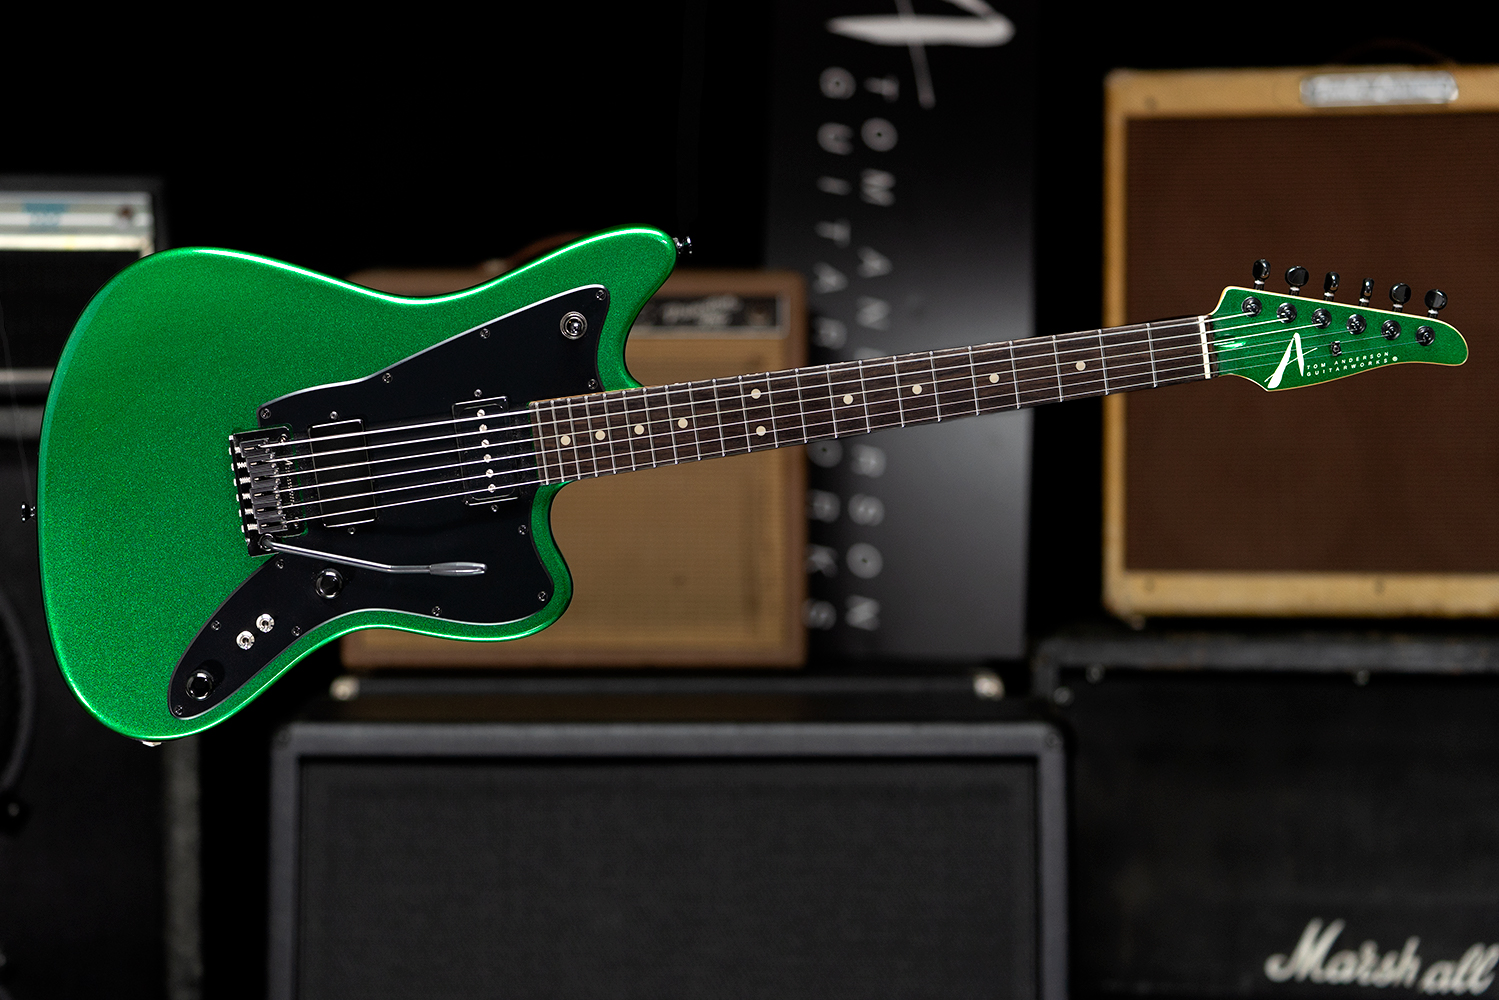 08-28-18A_f_Raven_Metallic Green.jpg